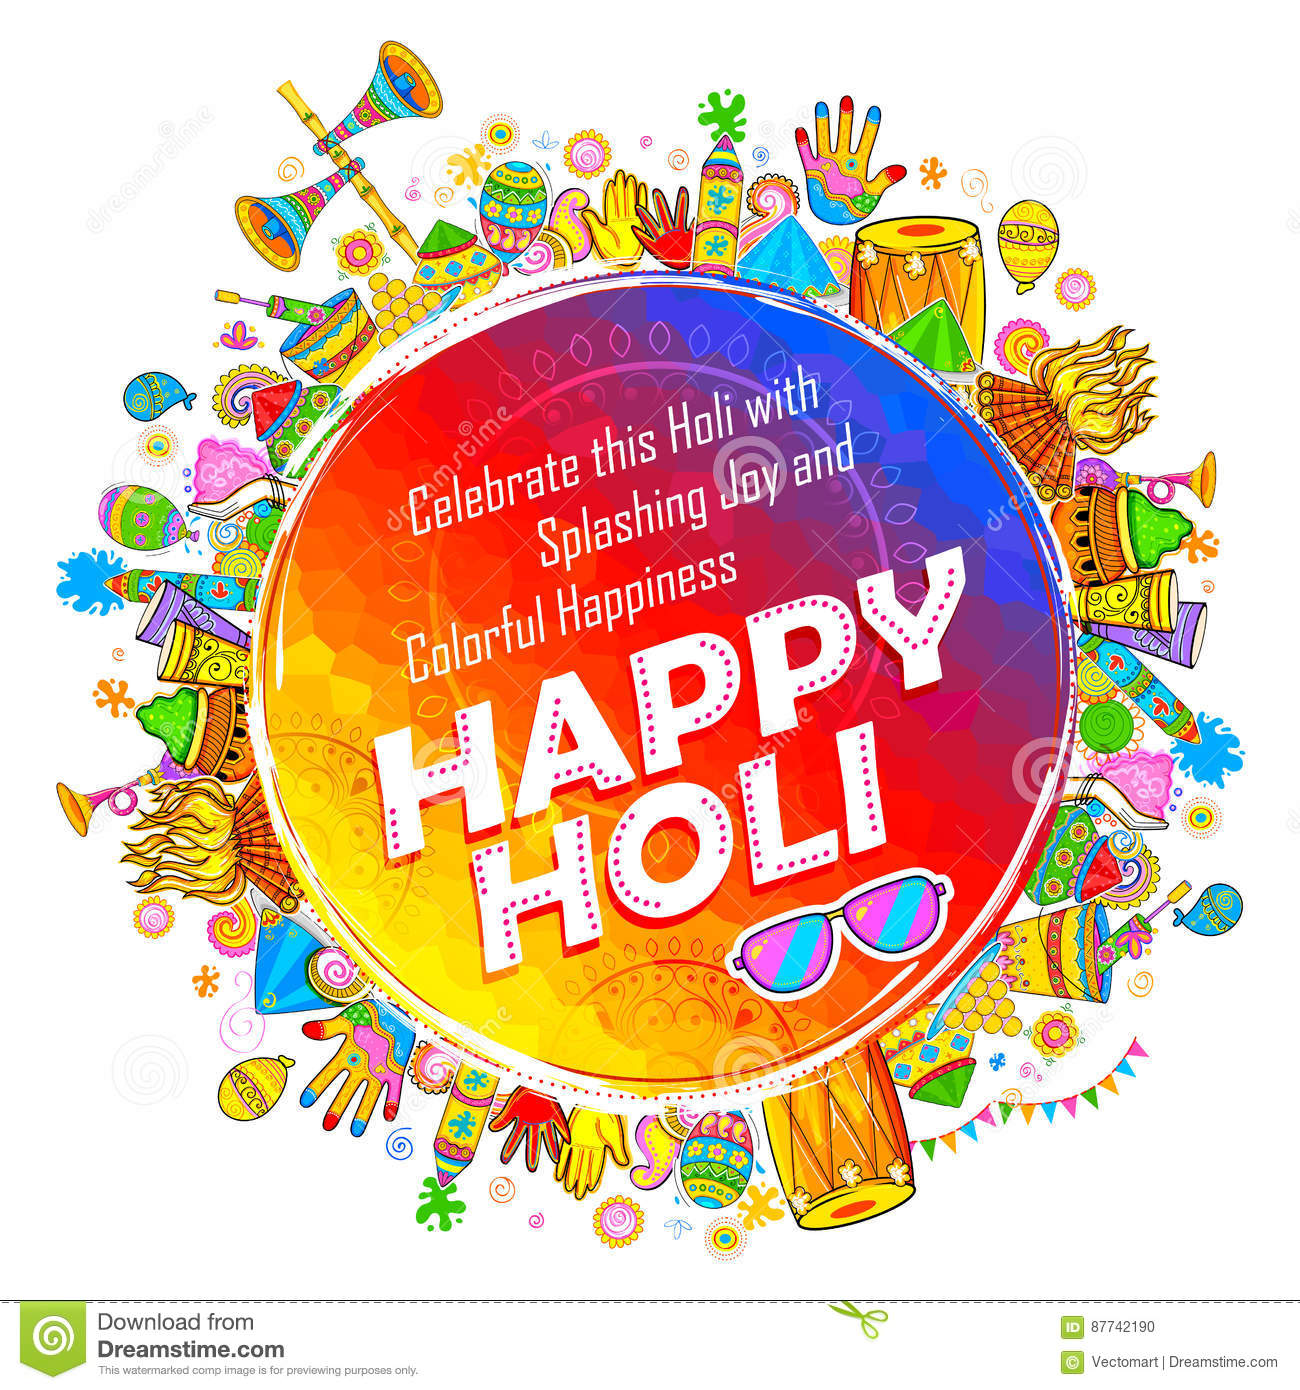 Happy holi background for festival of colors celebration greetings happy holi background for festival of colors celebration greetings kristyandbryce Image collections